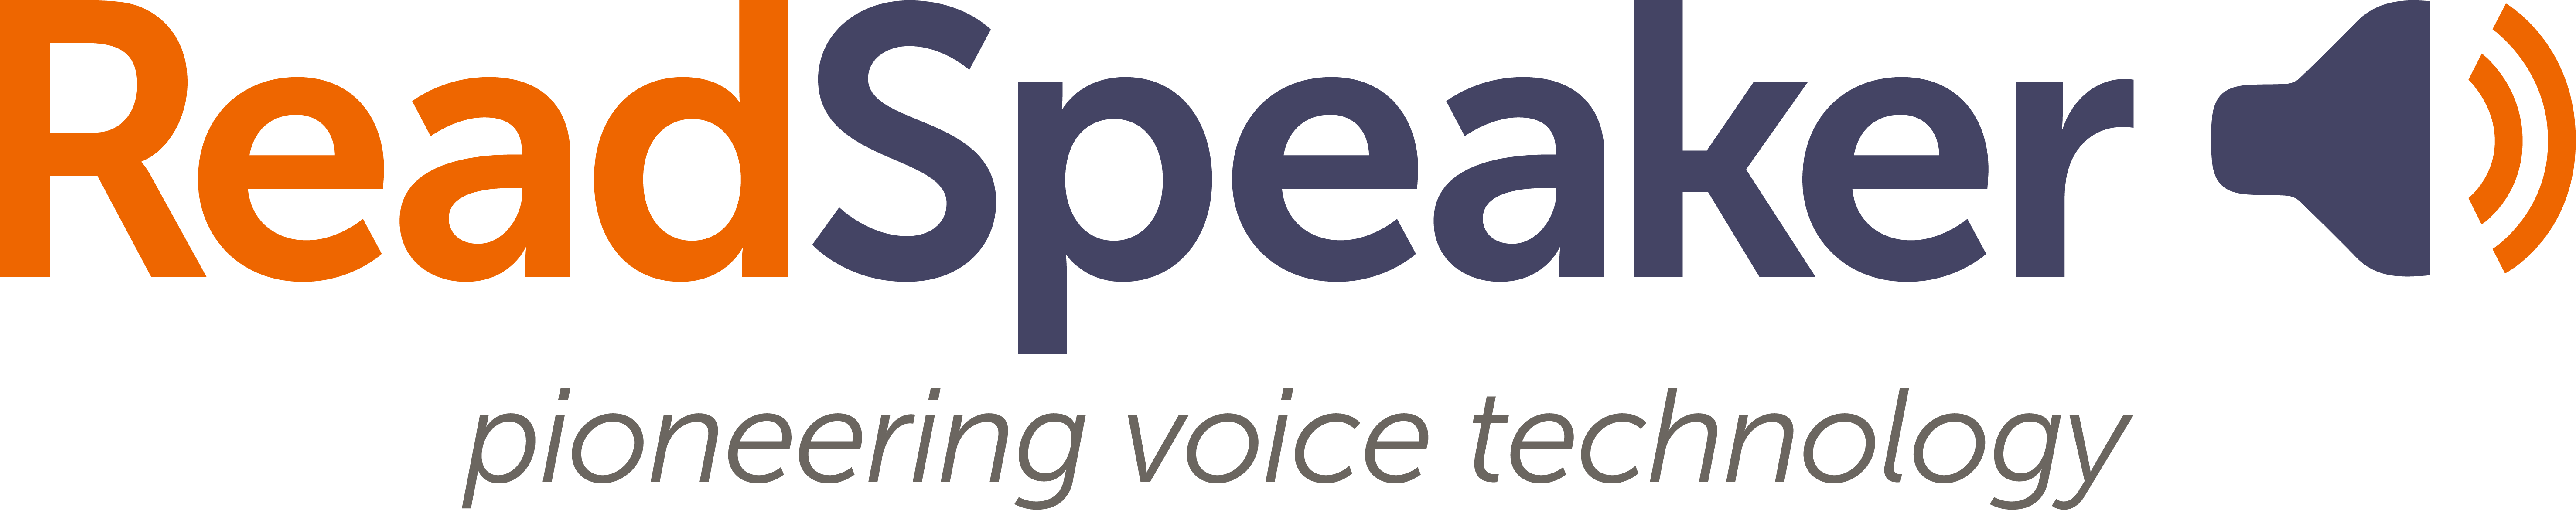 ReadSpeaker logo, pioneering voice technology